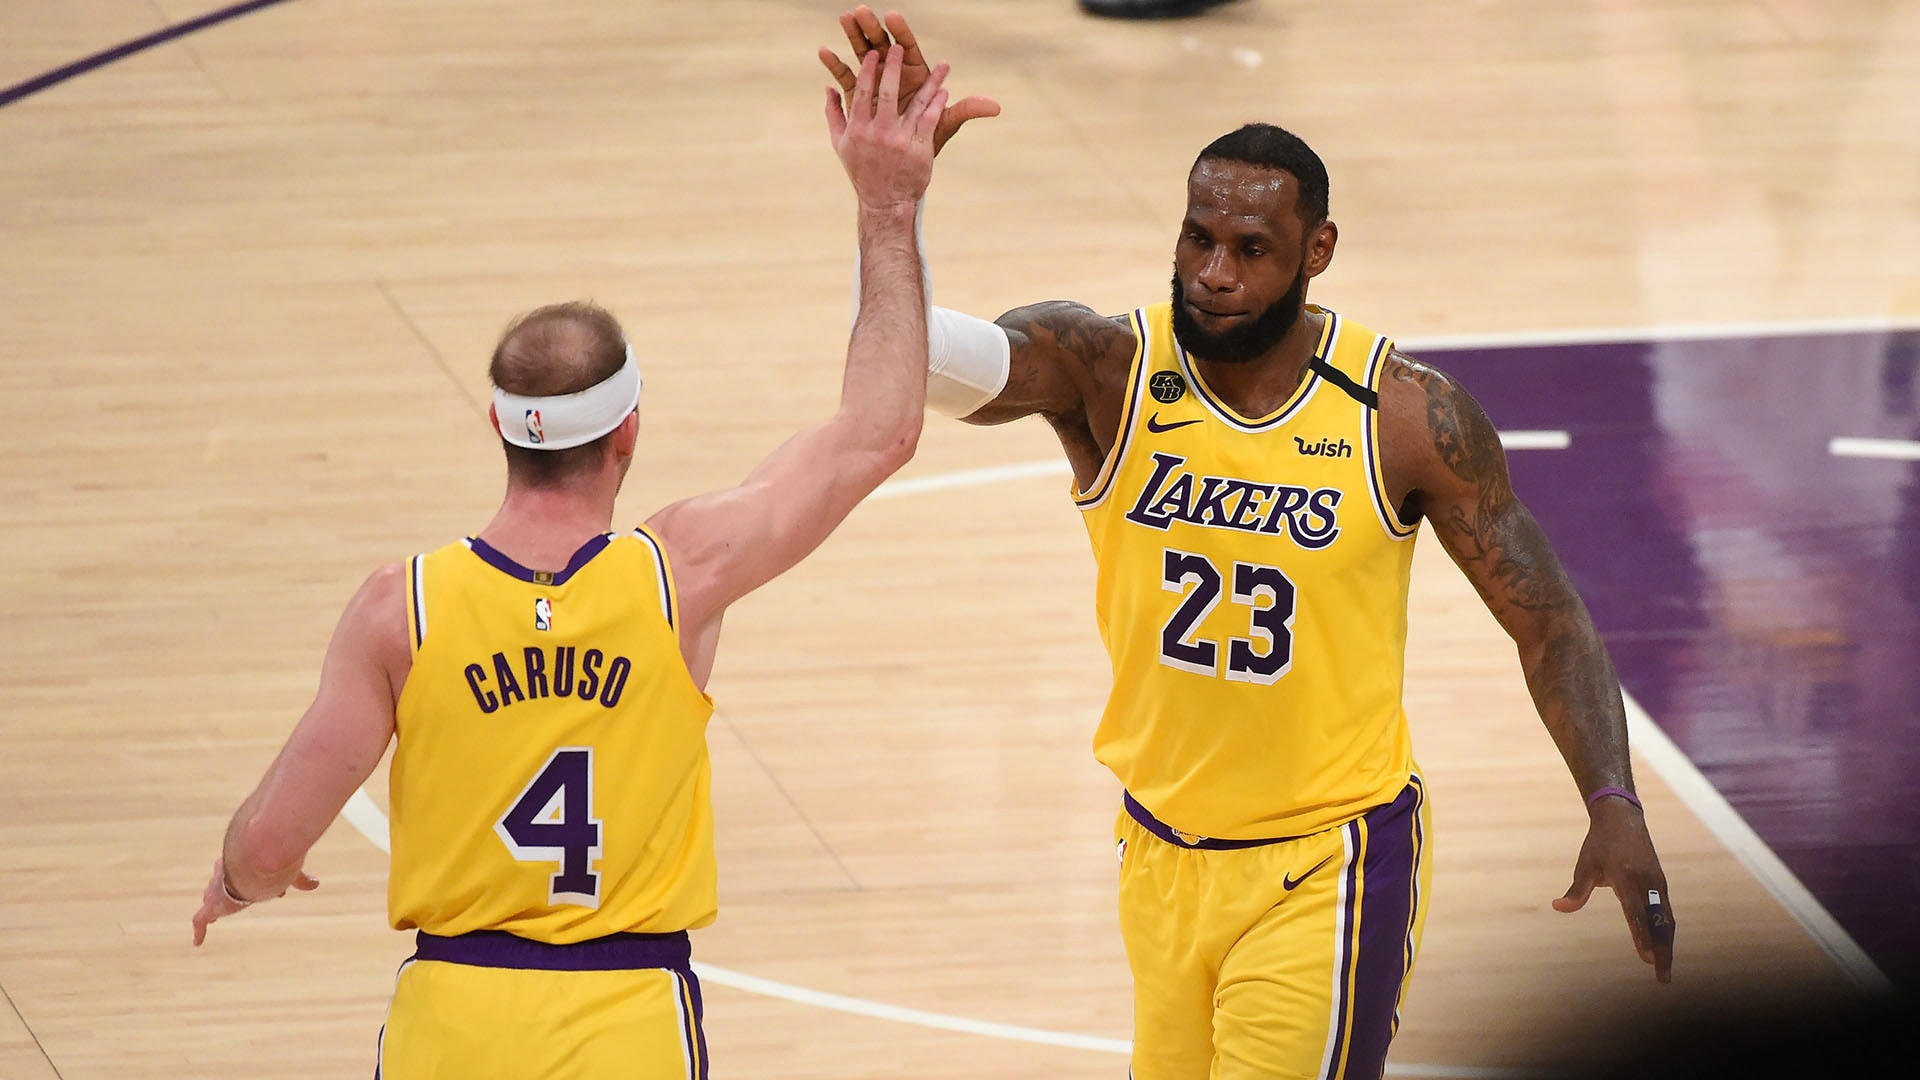 Lakers Reaction: LeBron, Caruso Provide Big Plays to Beat Pelicans